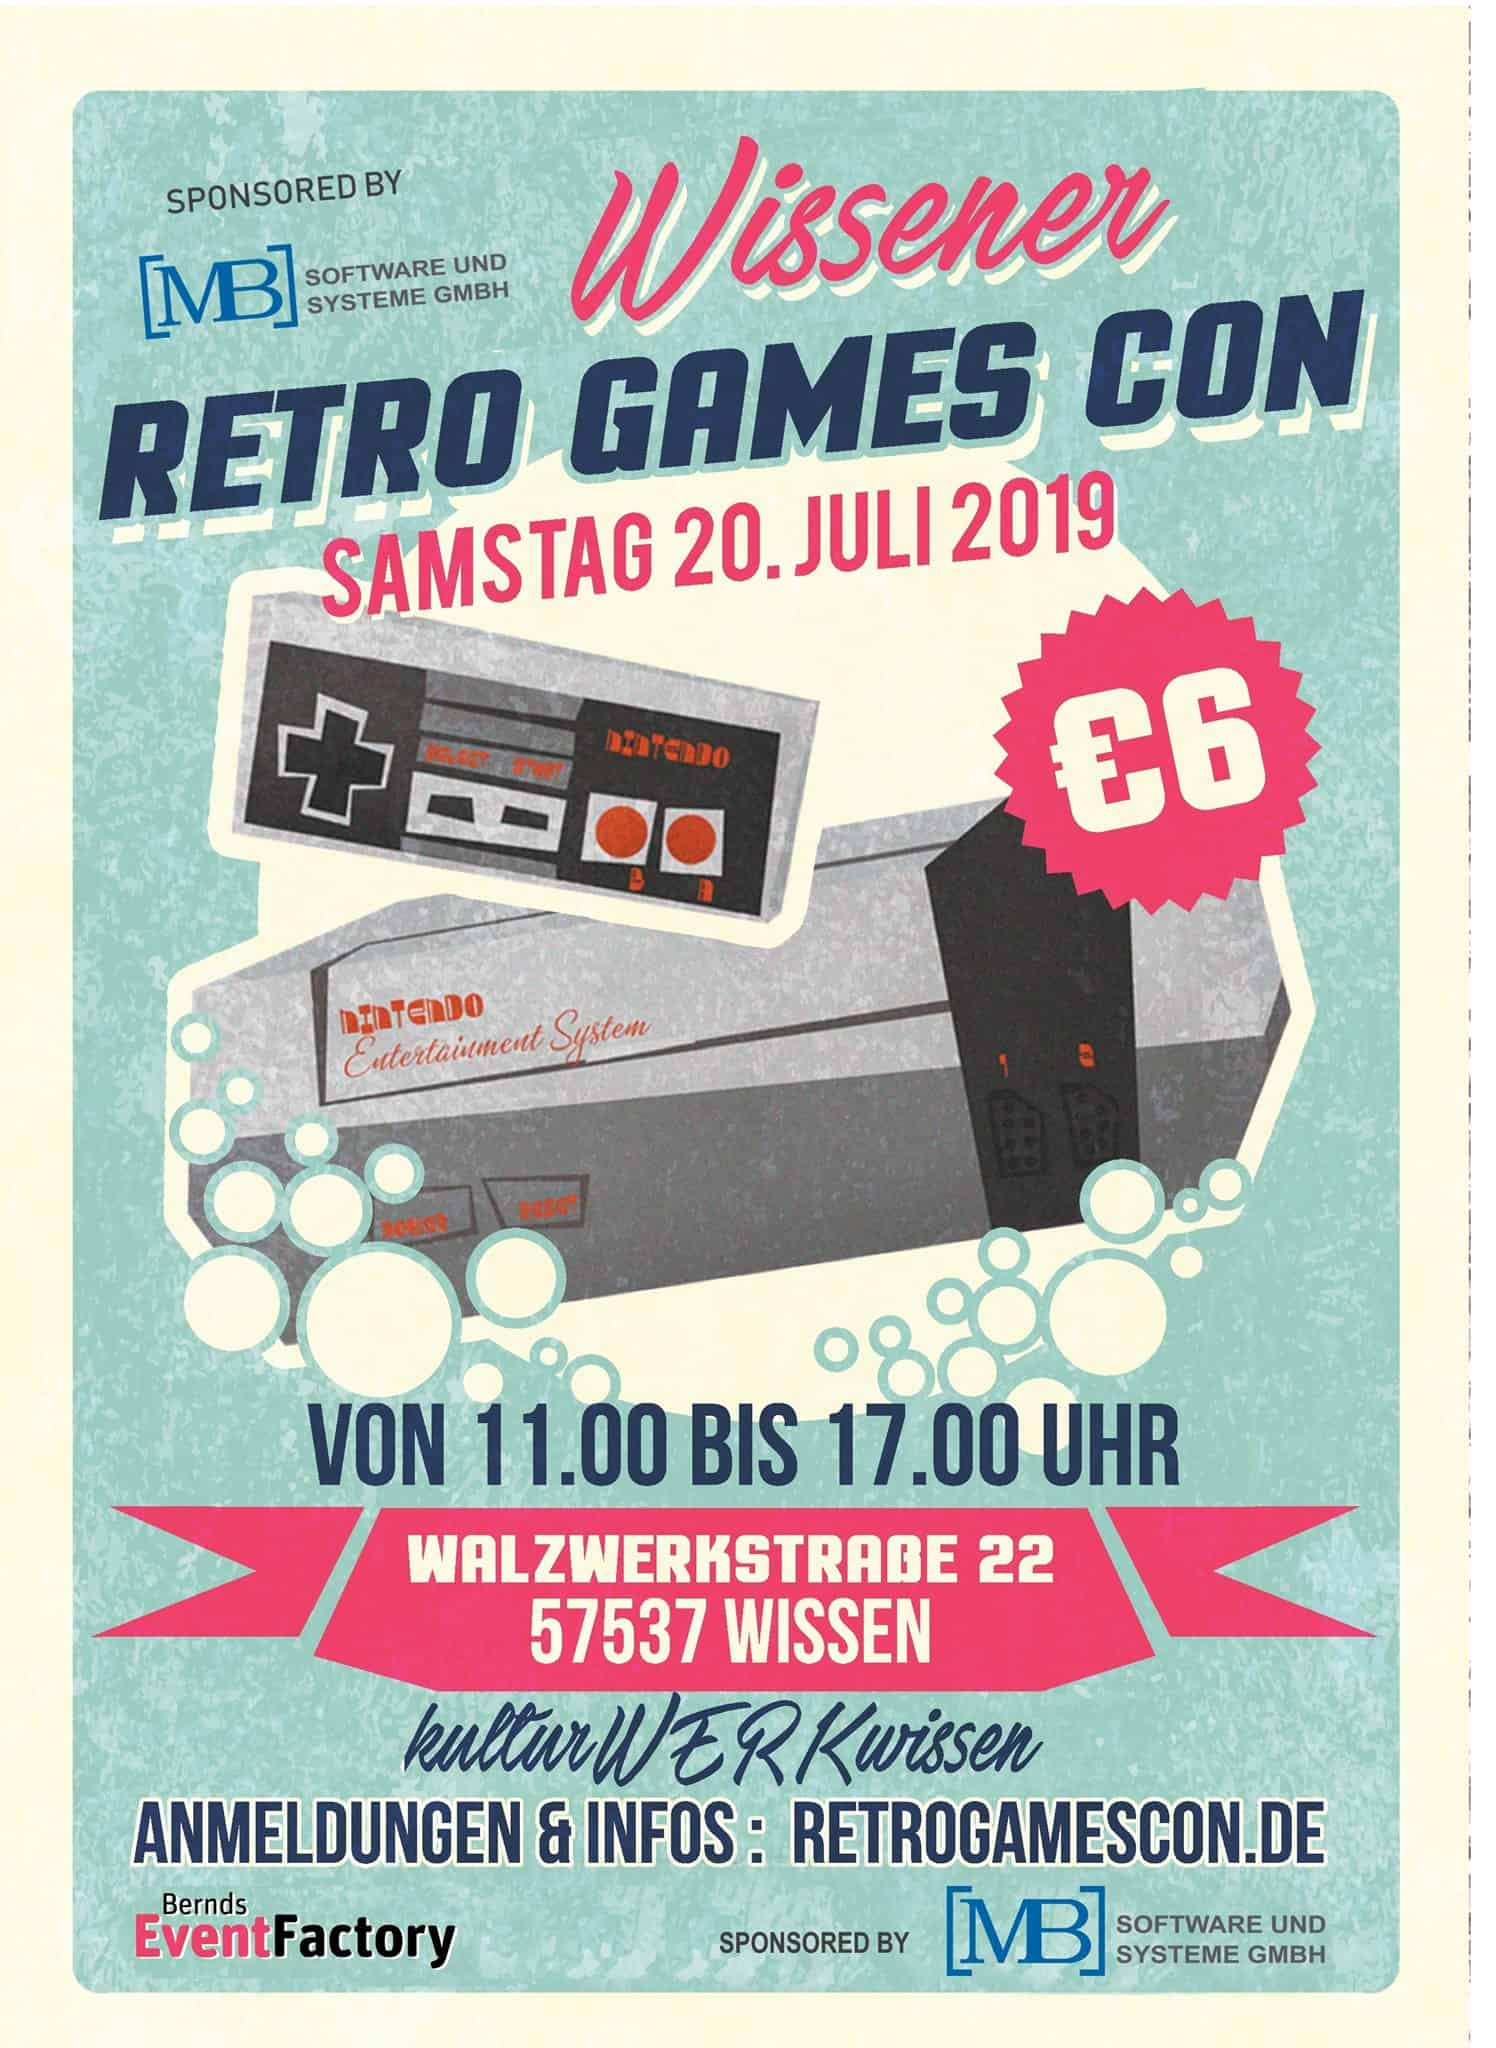 Wissener Retro Games Con